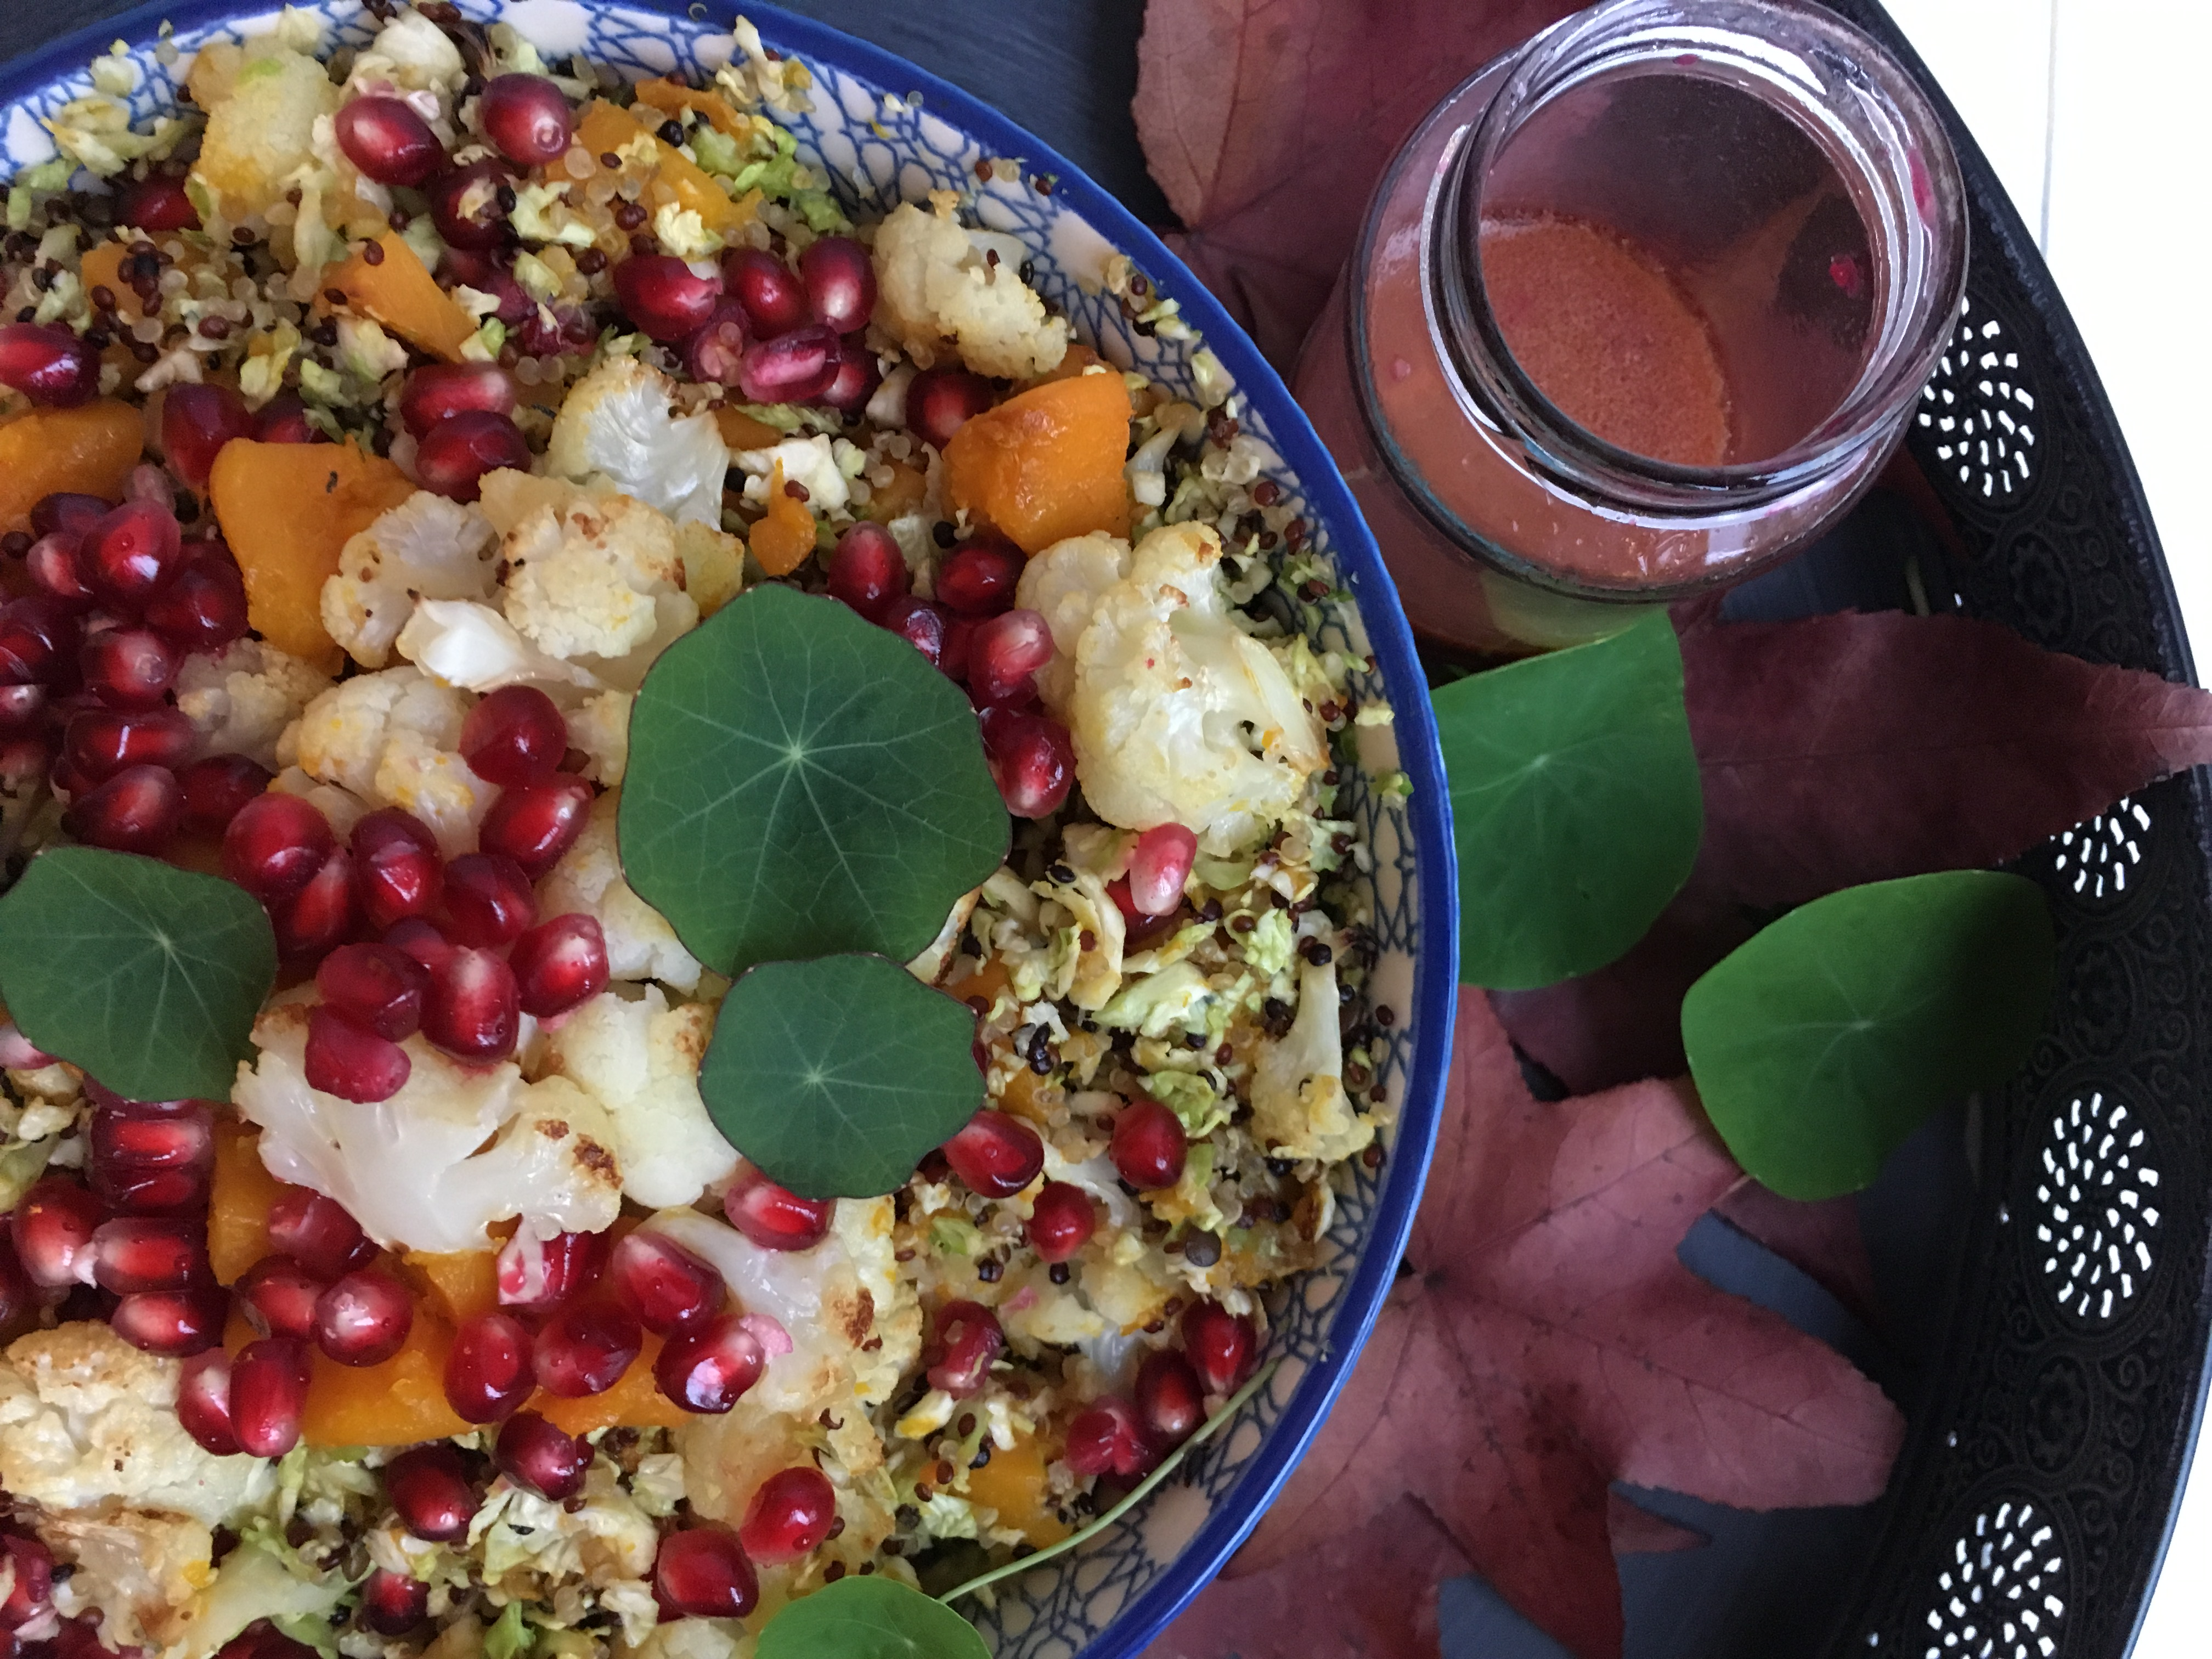 Pumpkin and Cauliflower Quinoa Salad with Pomegranate Salad Dressing - The Histamine Friendly Kitchen